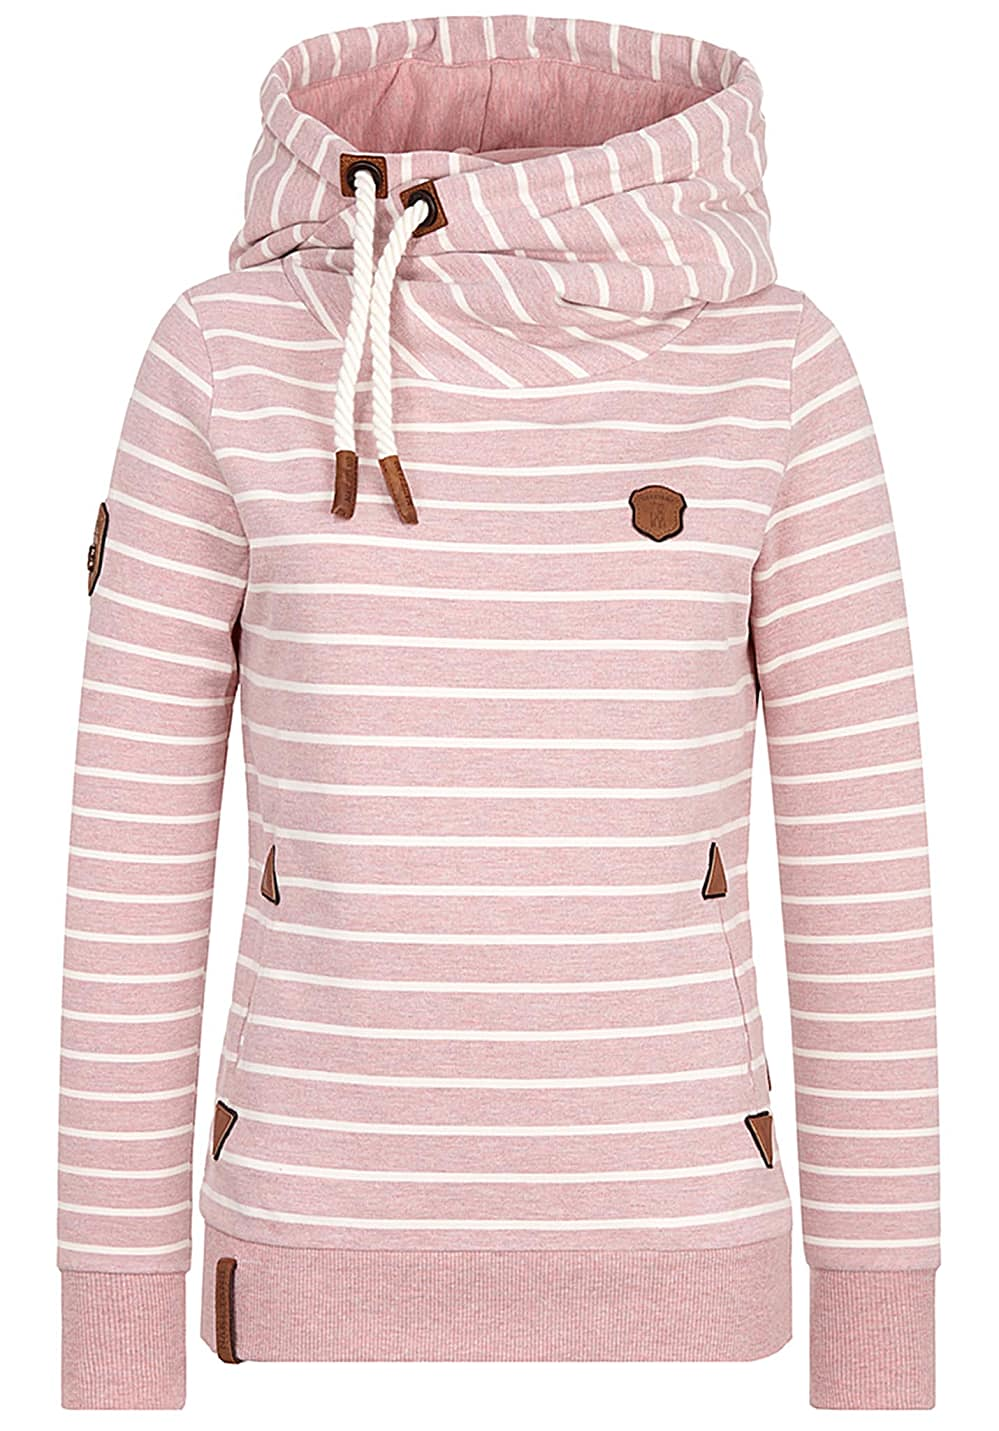 Naketano Fleissiges Bumserlein W hoodie pink white striped